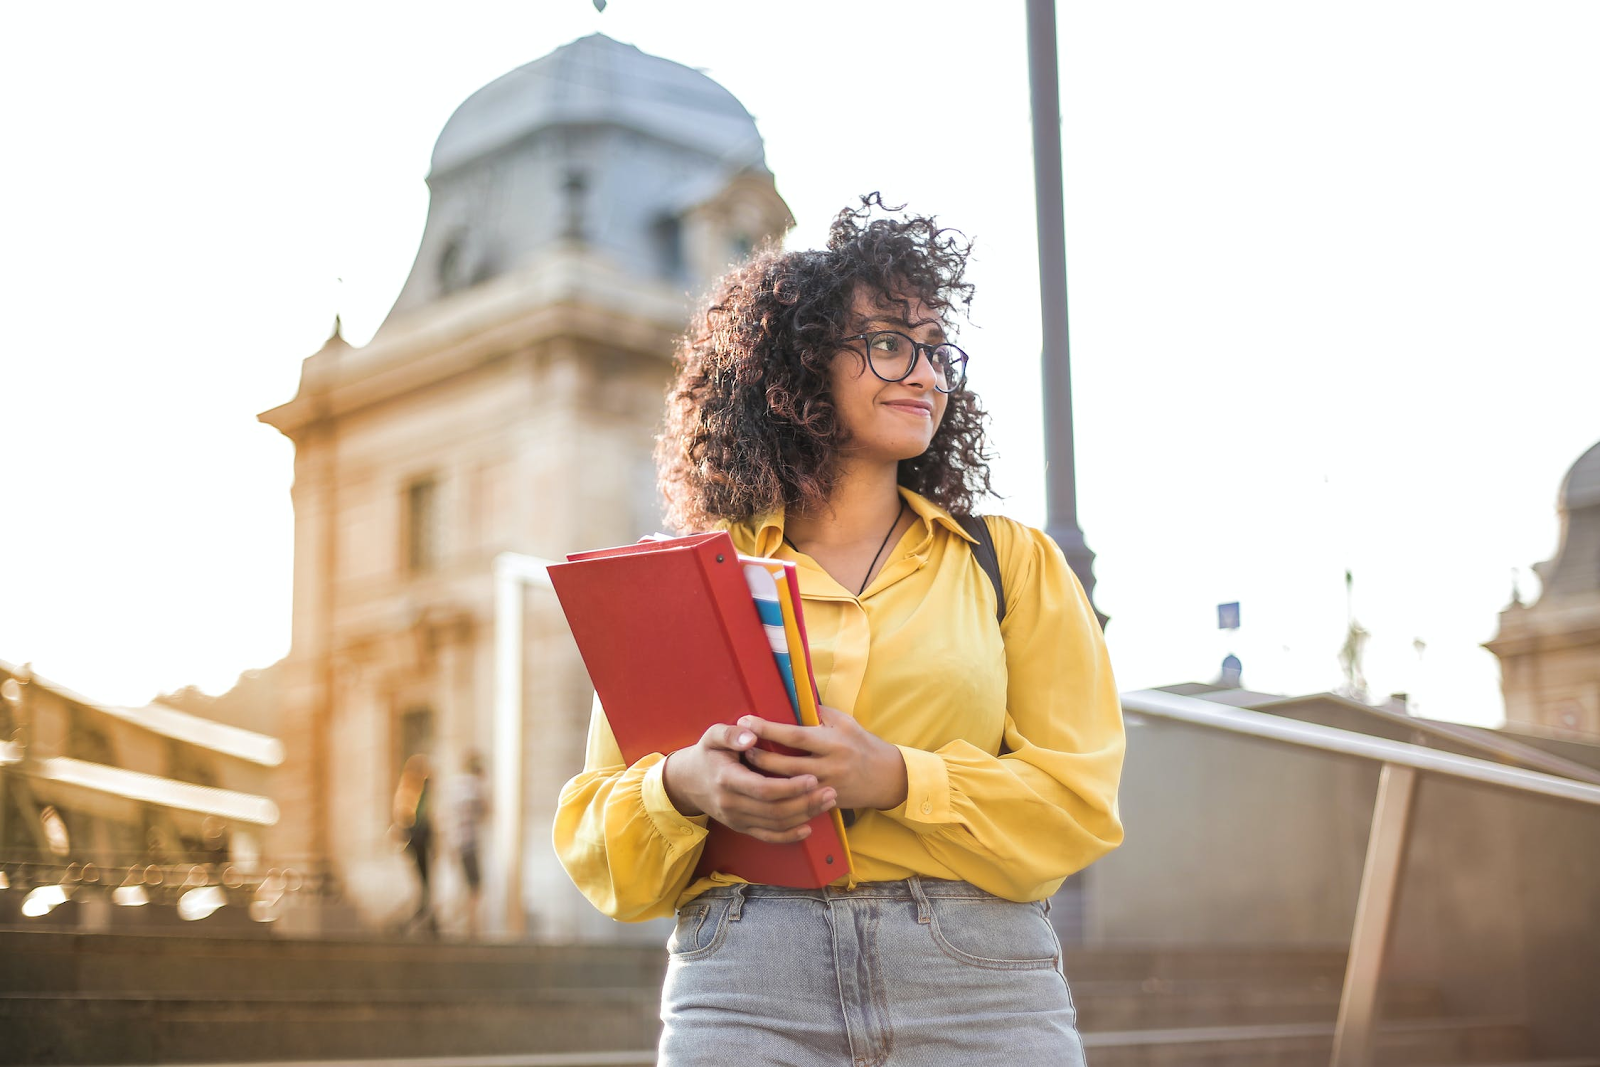 Smiling woman in yellow standing outside and carrying a red binder